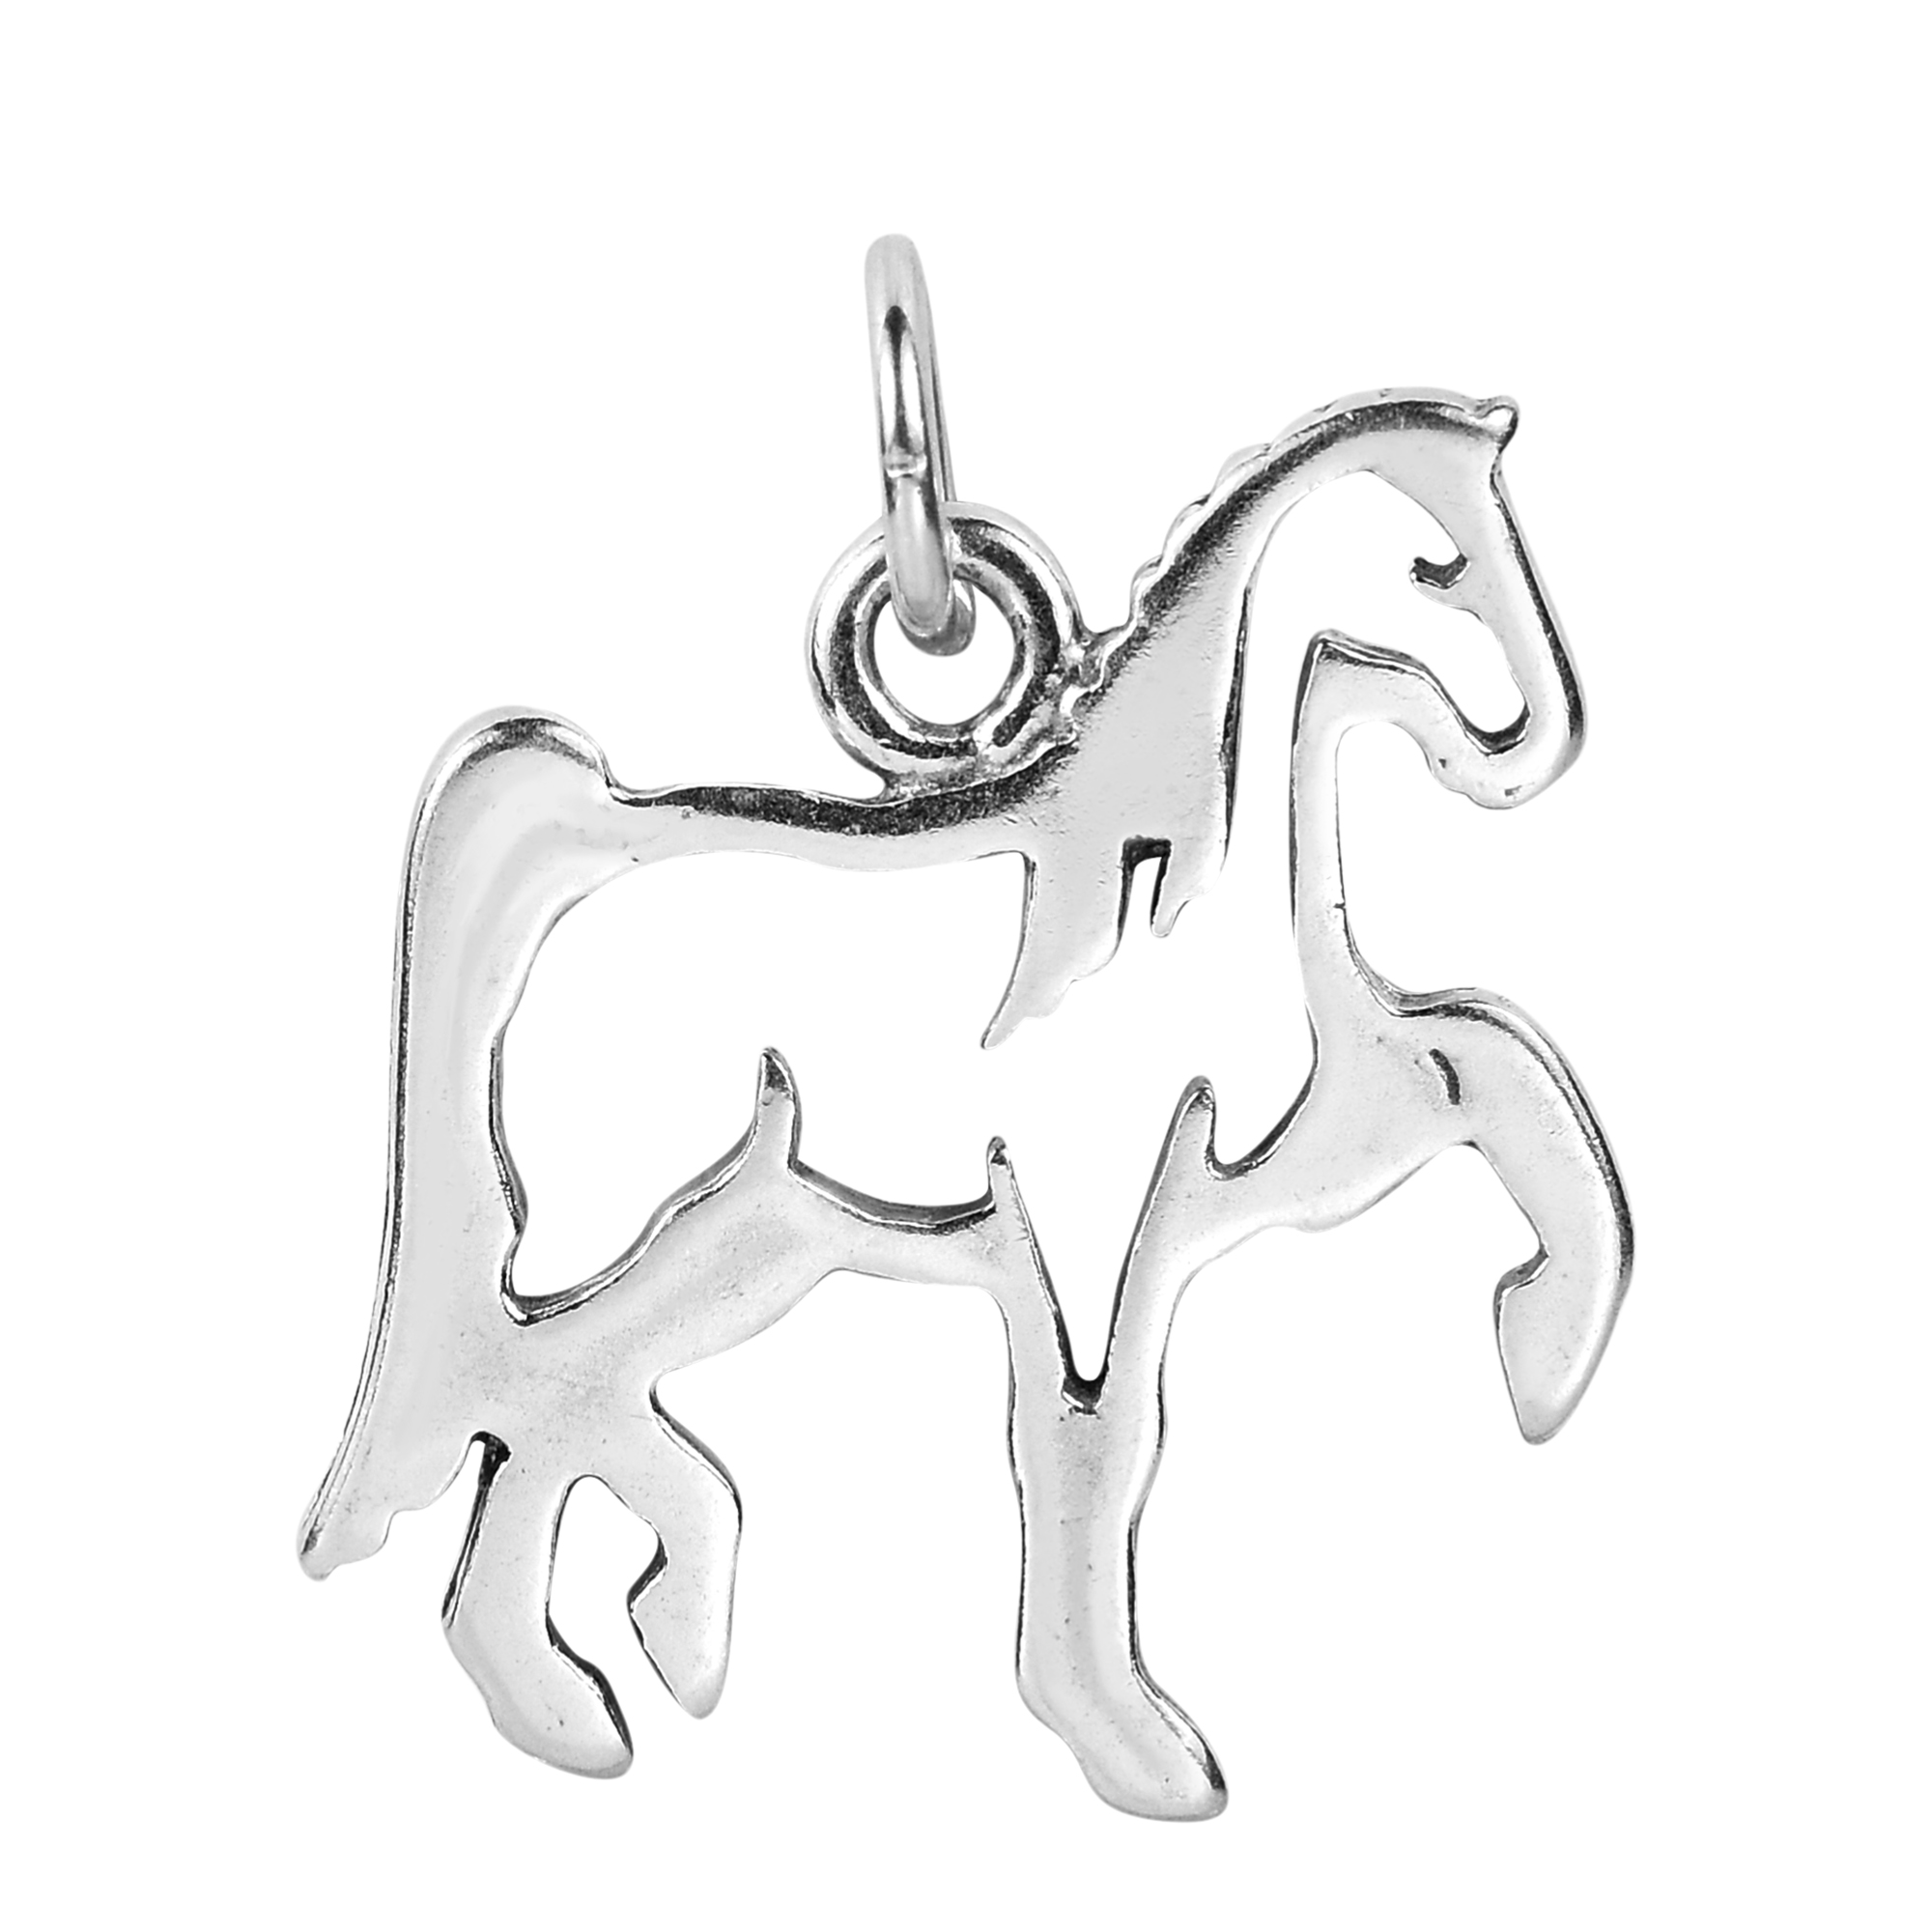 simple majestic horse outline in sterling silver pendant aeravida Chicken Foot this fun and charming pendant features the silhouette of a majestic horse proudly standing with one foot in the air expertly handcrafted from sterling